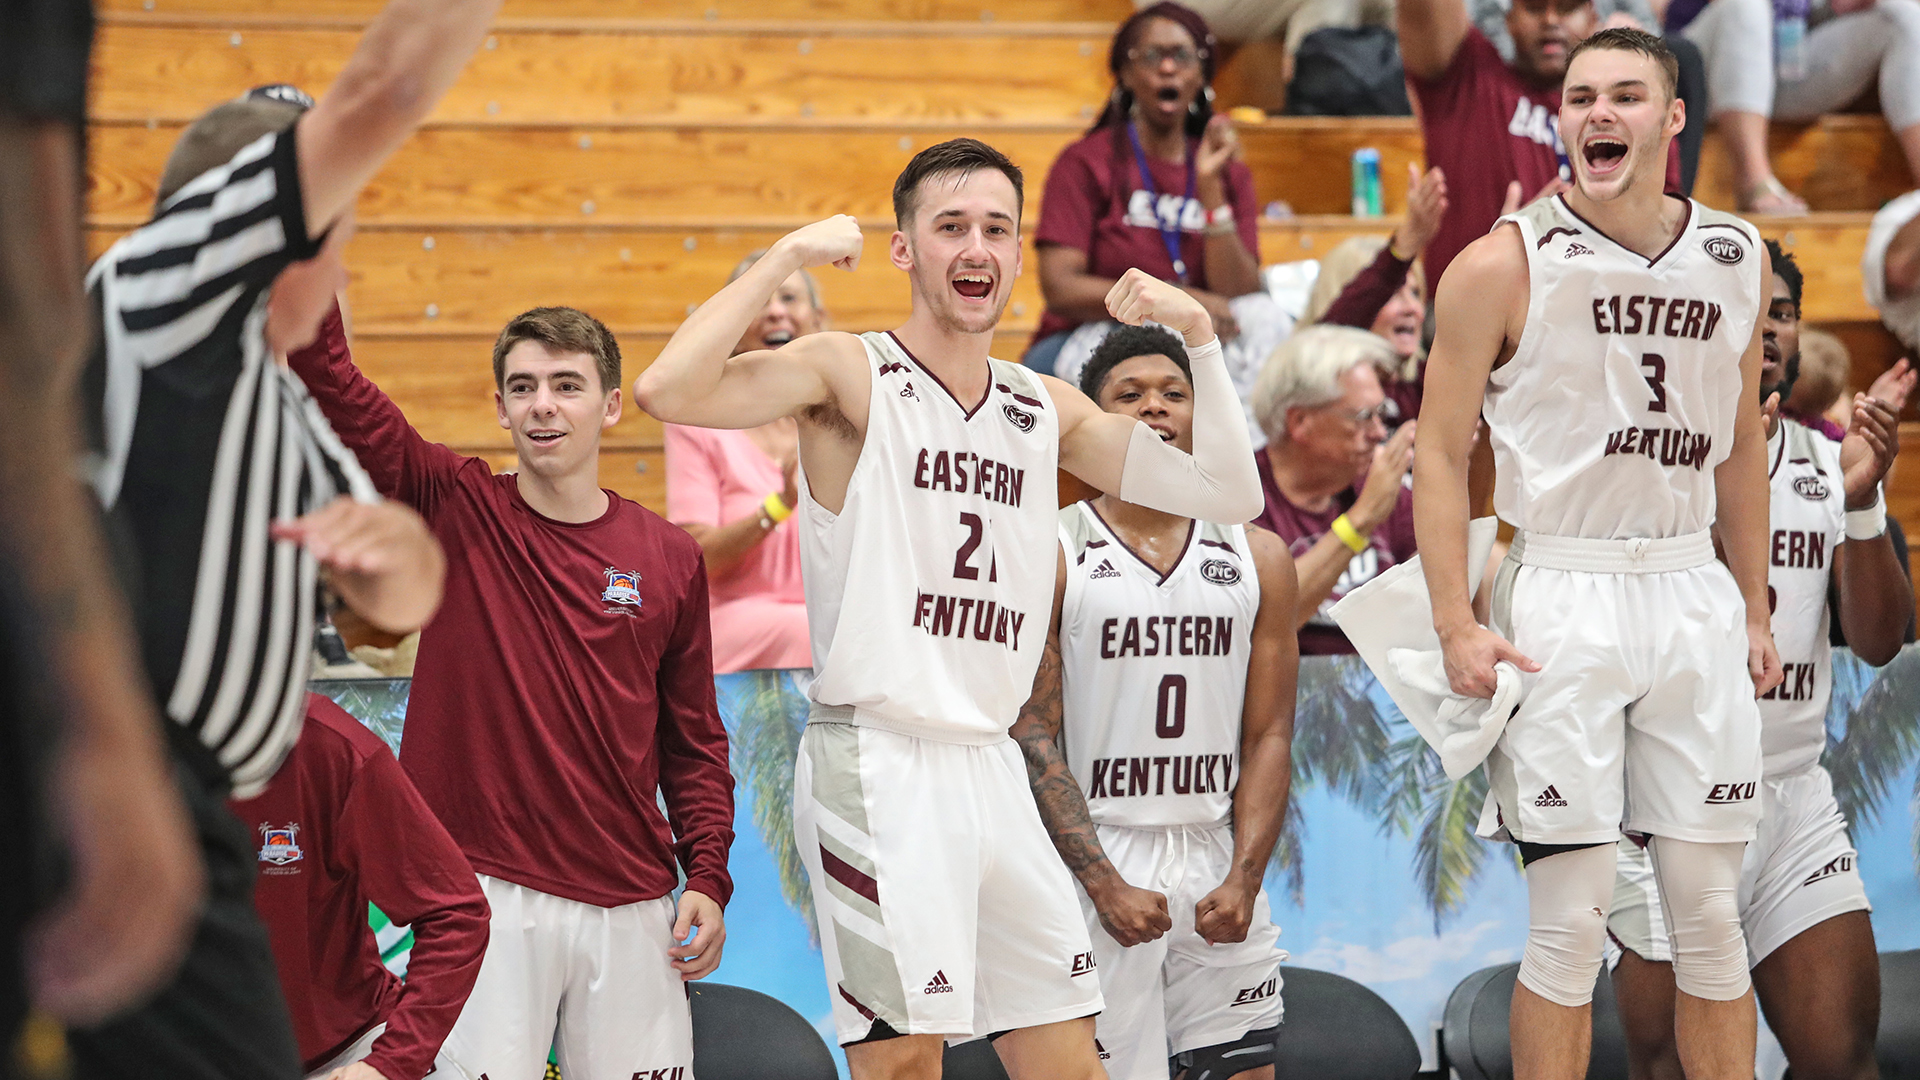 low priced 0f1dd 231b9 Lachlan Anderson - Men's Basketball - Eastern Kentucky ...